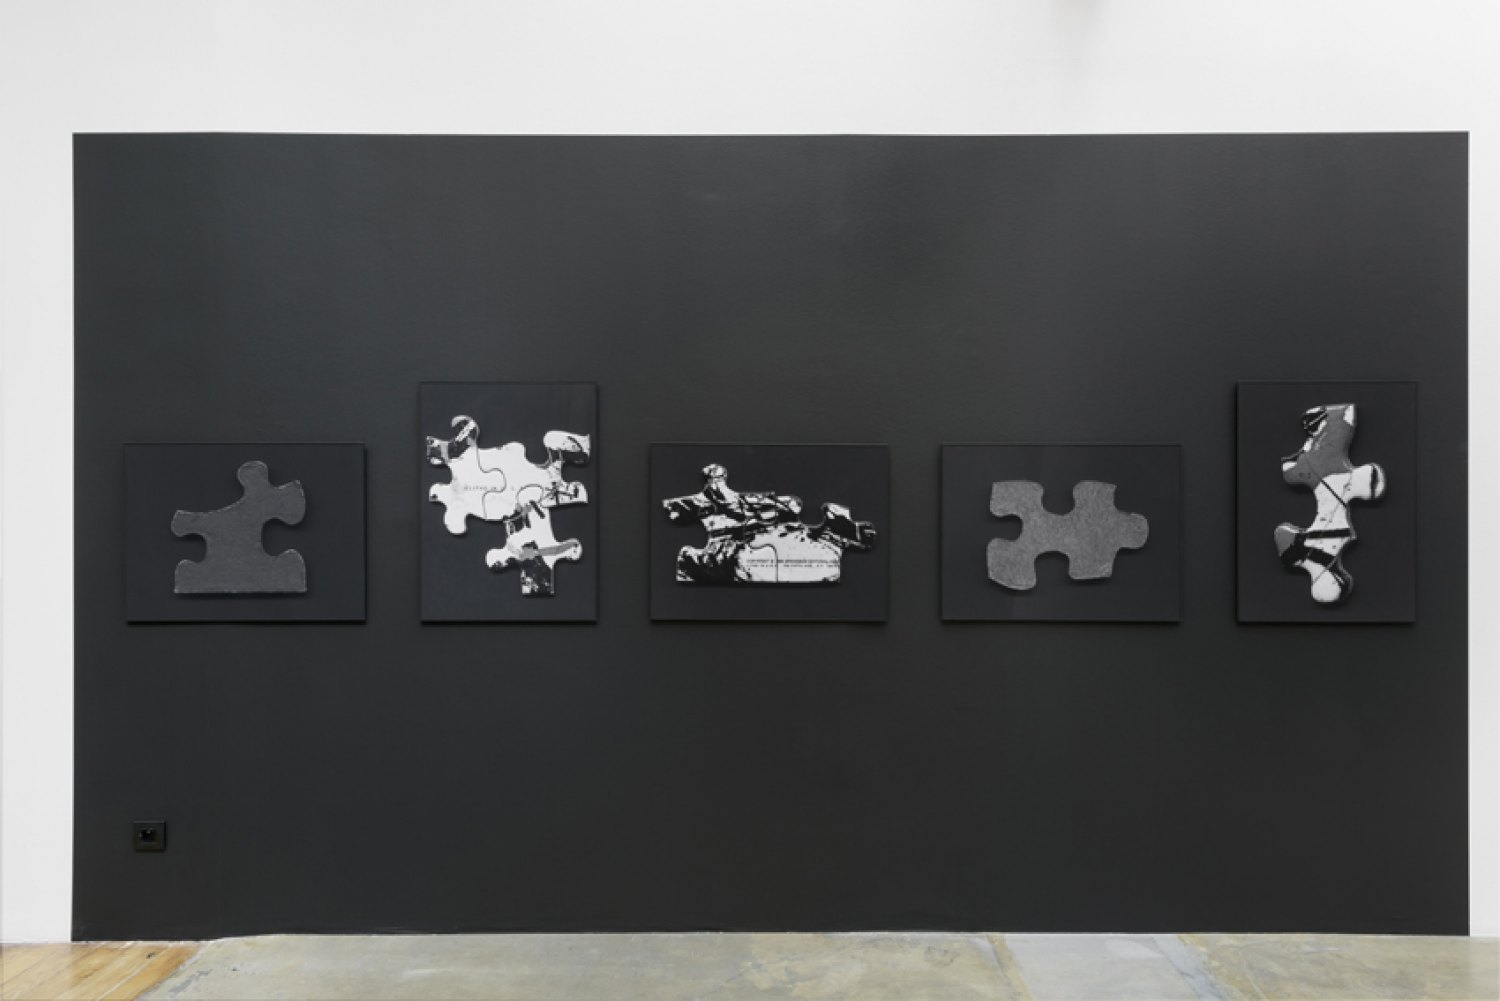 Sean Snyder Reconstruction, 2016 5 b/w archival pigment prints on matte paper, 51.75 cm x 69 cm, 1 cm black aluminum frame, installed on wall painted RAL 9017, 229 cm high x 400 cm wide